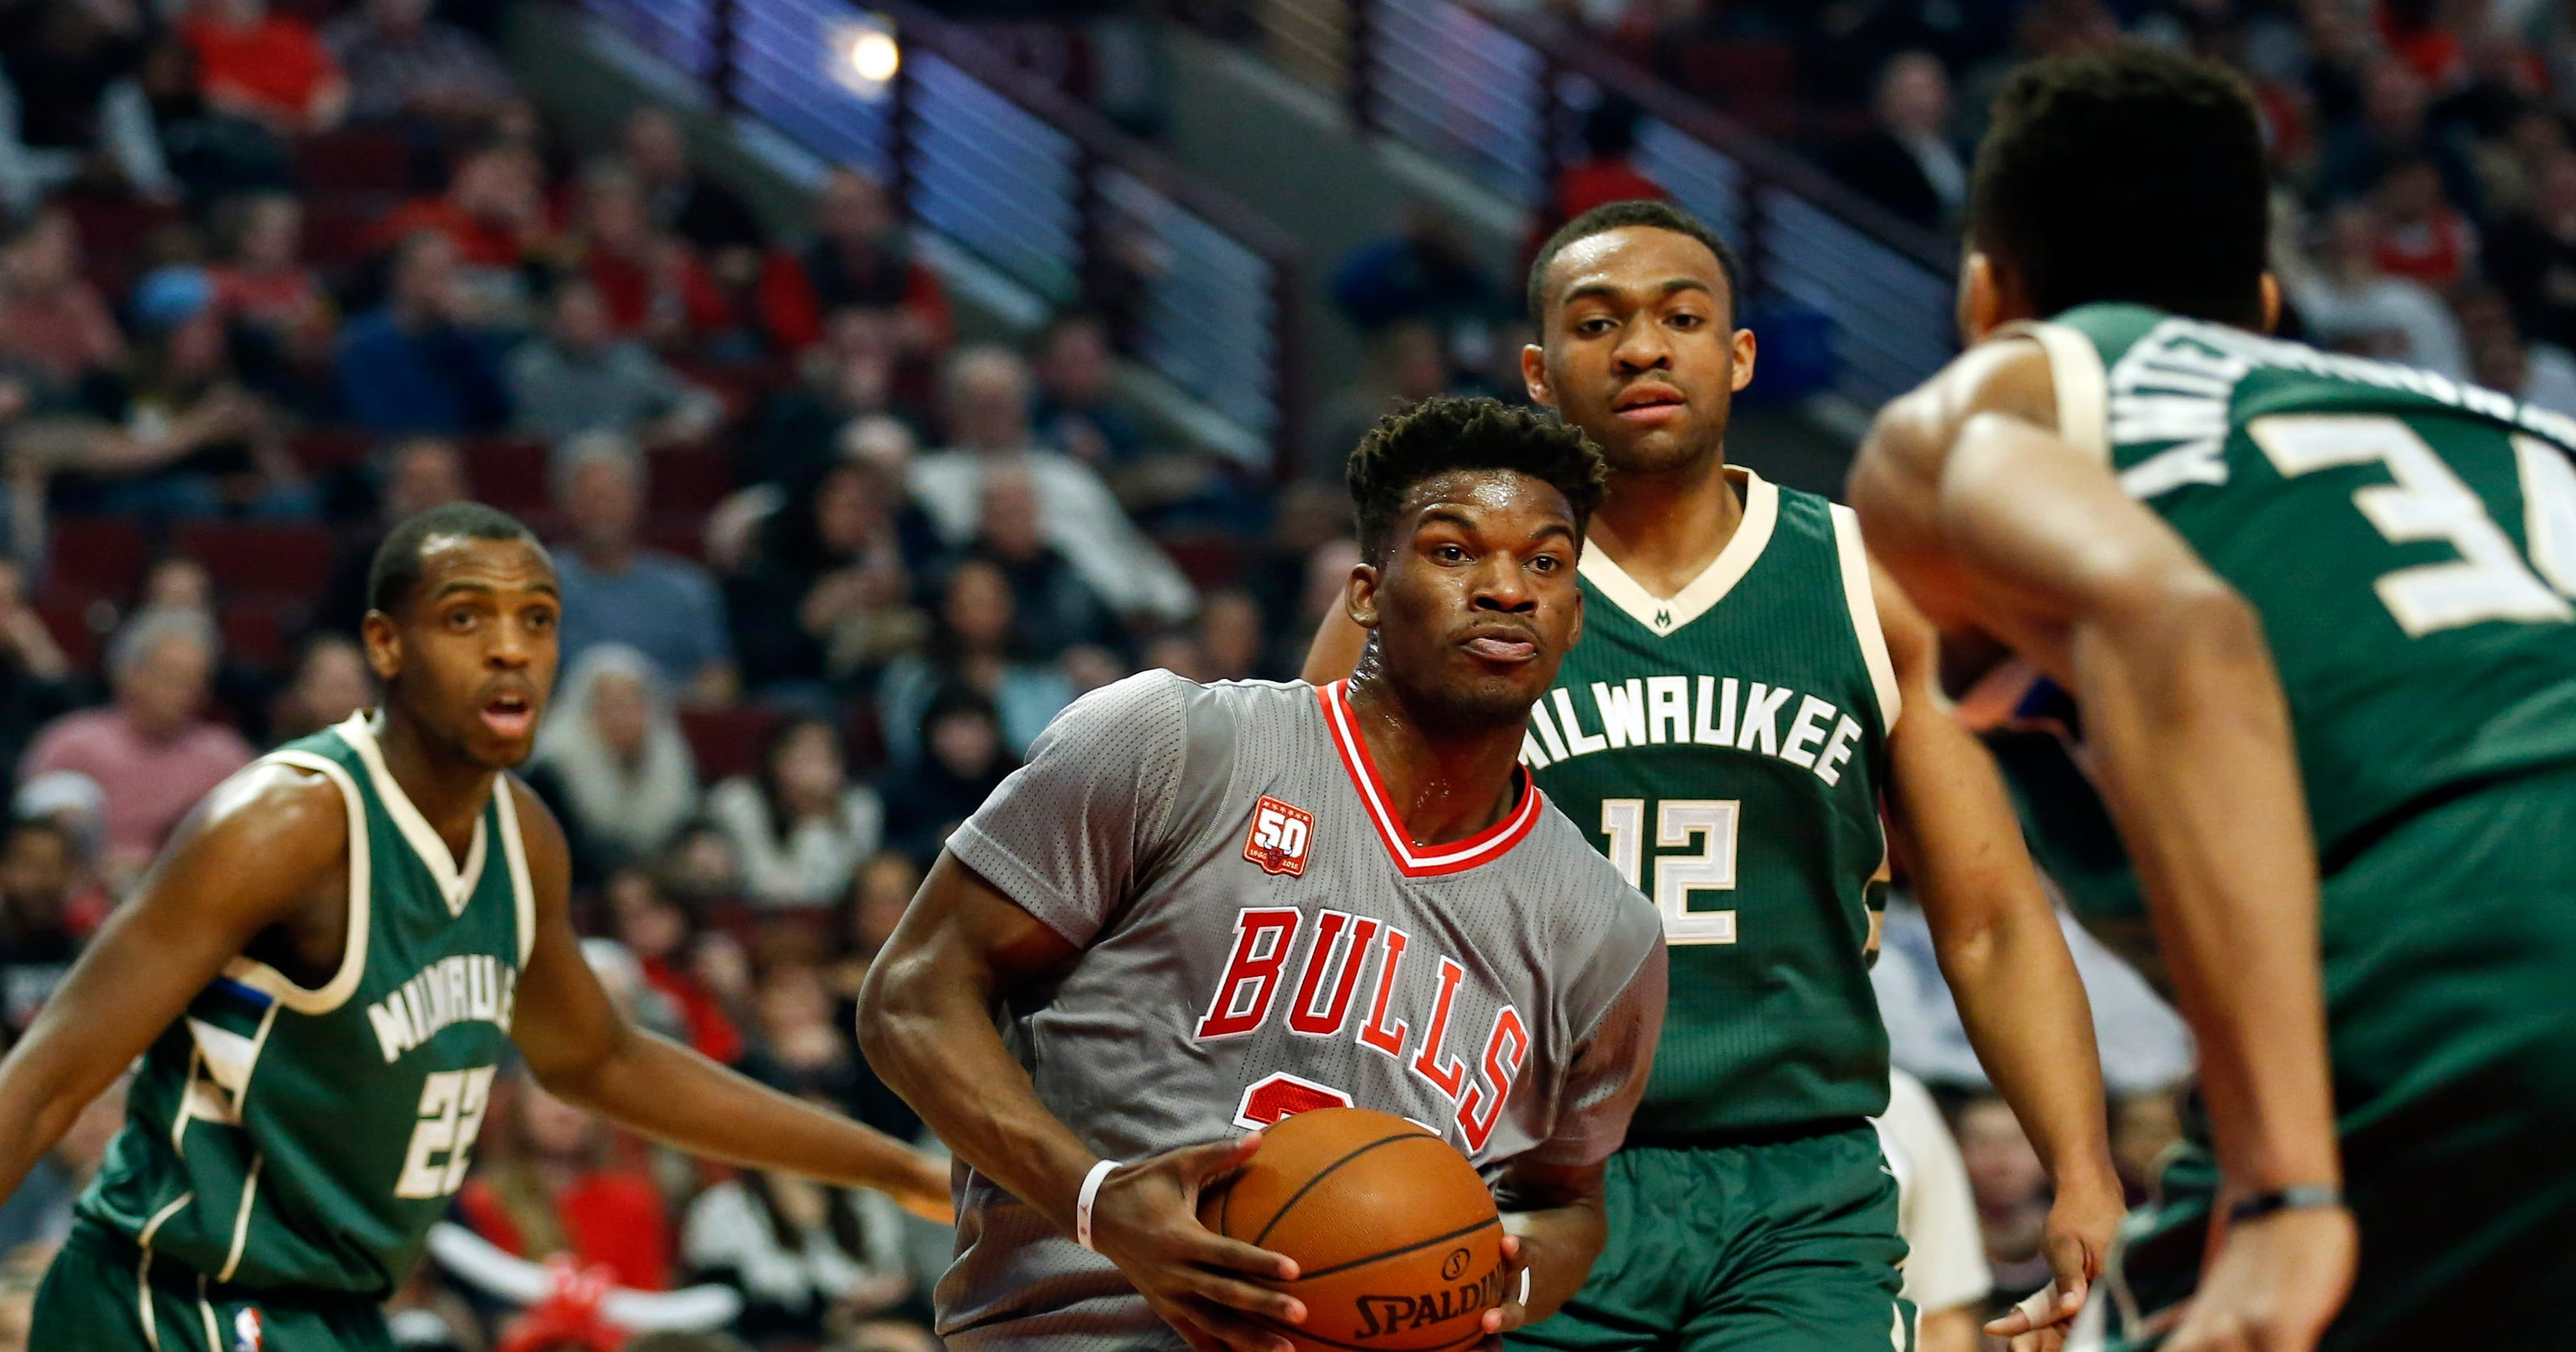 264603fc7d61 Jimmy Butler scores 32 points to lead Bulls over Bucks